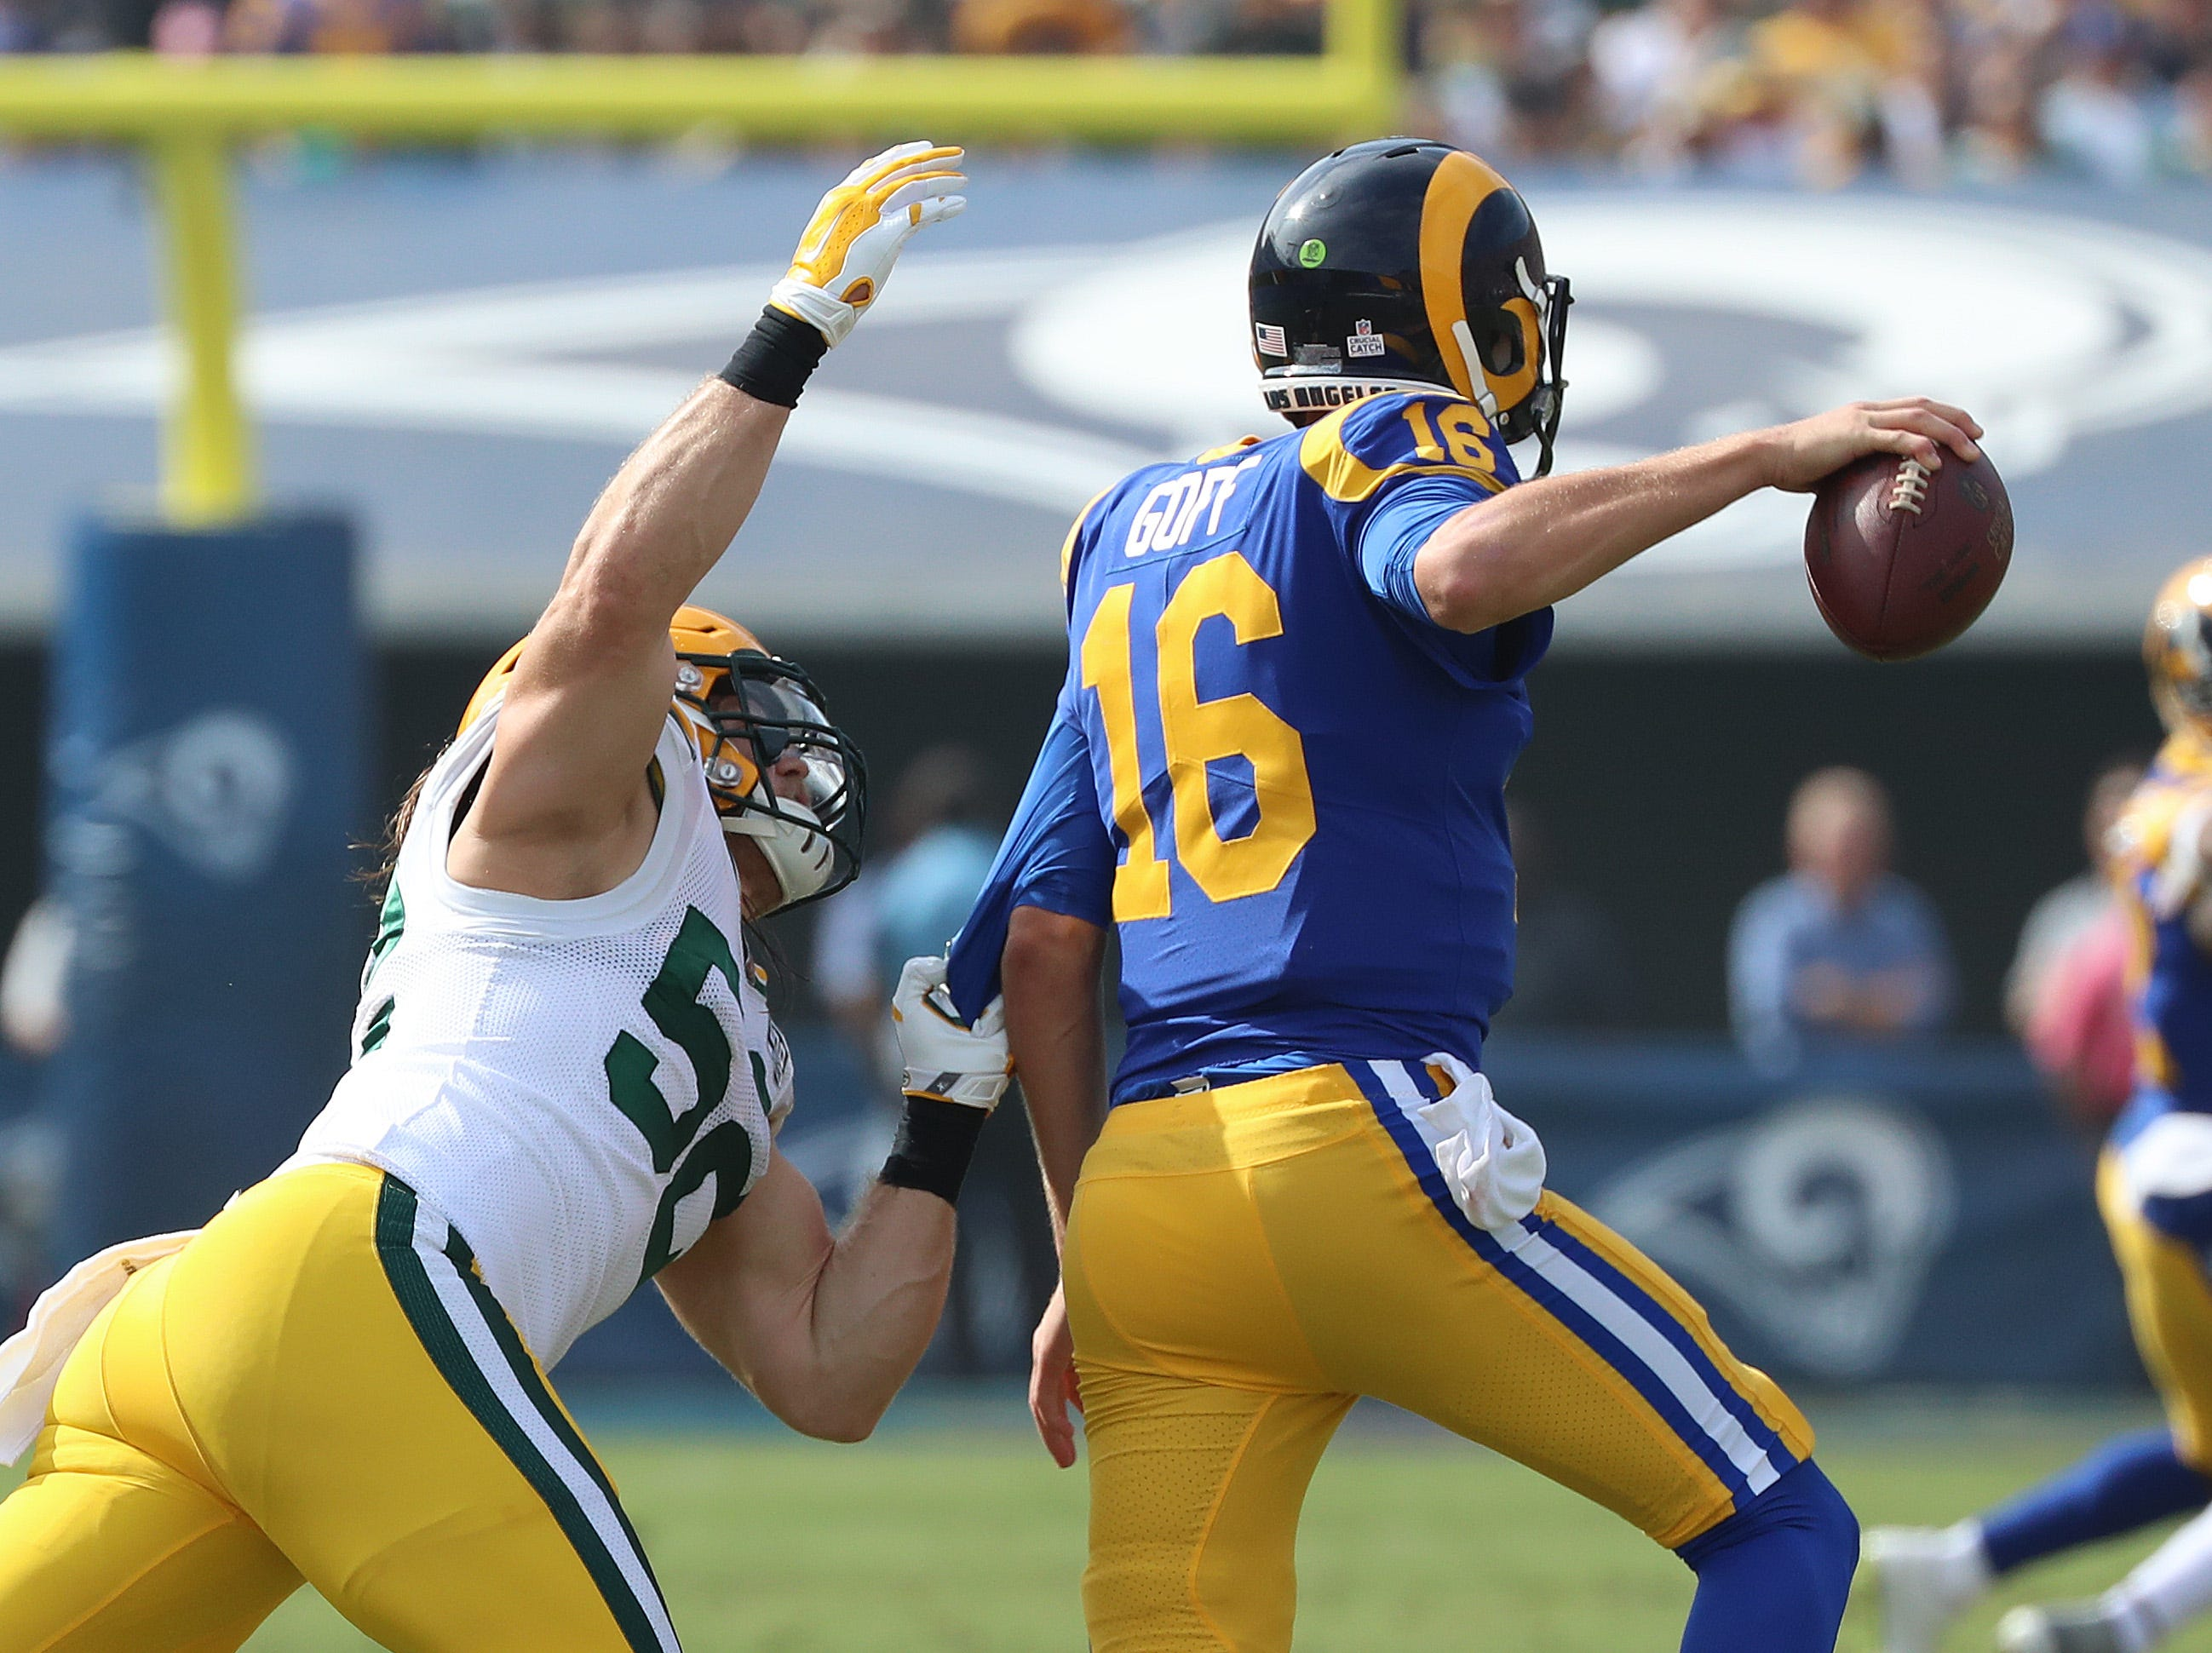 Green Bay Packers linebacker Clay Matthews (52) closes in on quarterback Jared Goff (16) against the LA Rams Sunday, October 28, 2018 at the Memorial Coliseum in Los Angeles, Cal. Jim Matthews/USA TODAY NETWORK-Wis